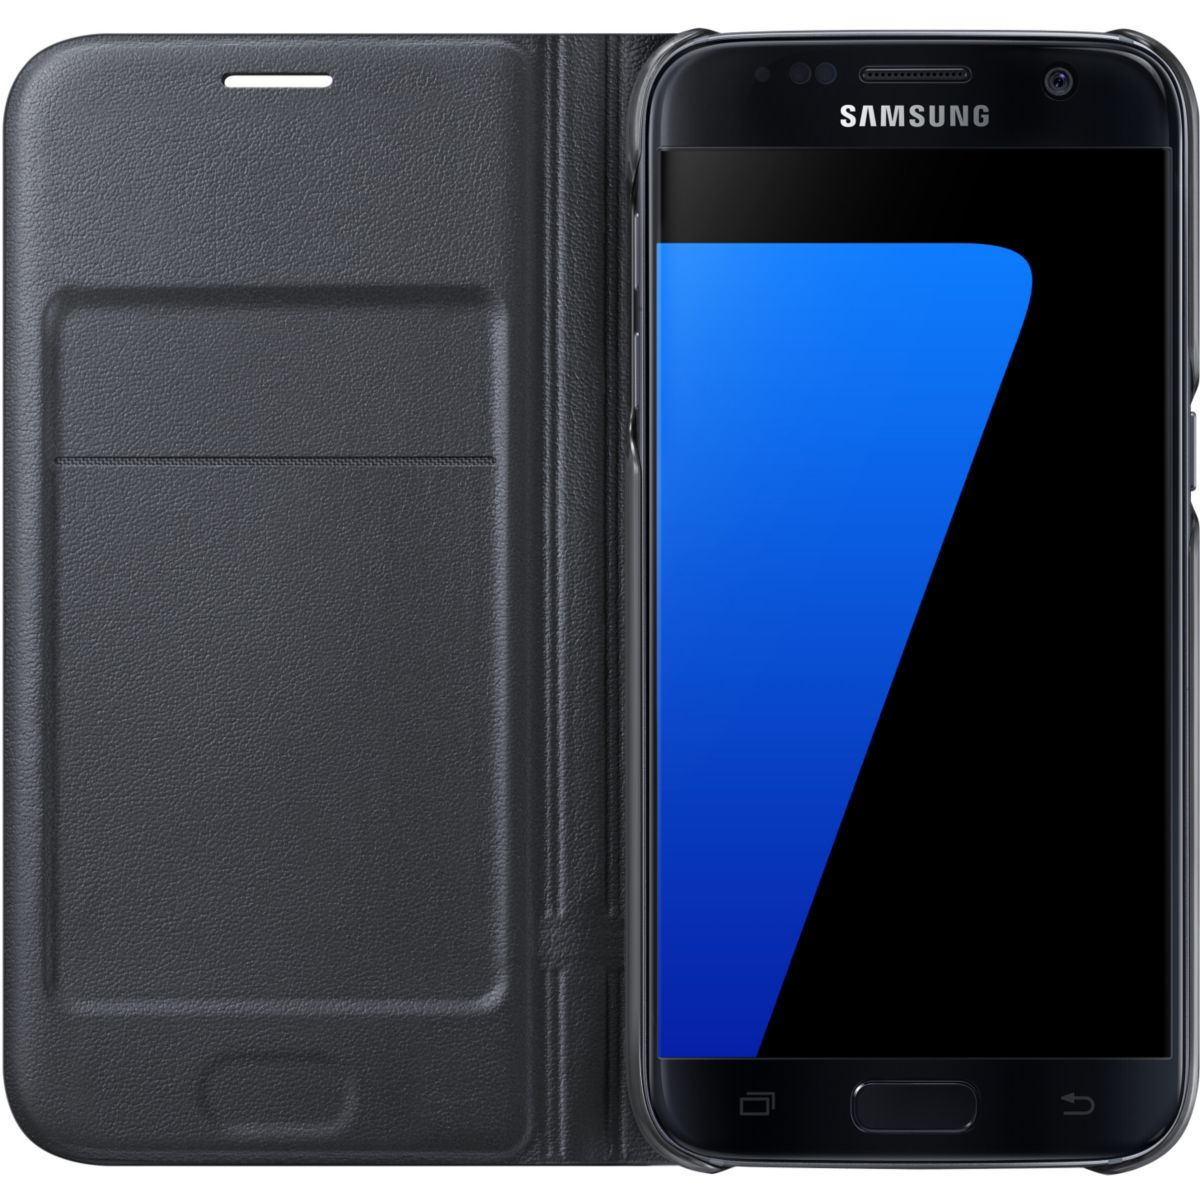 Etui samsung view cover led galaxy s7 noir - soldes et bons plans